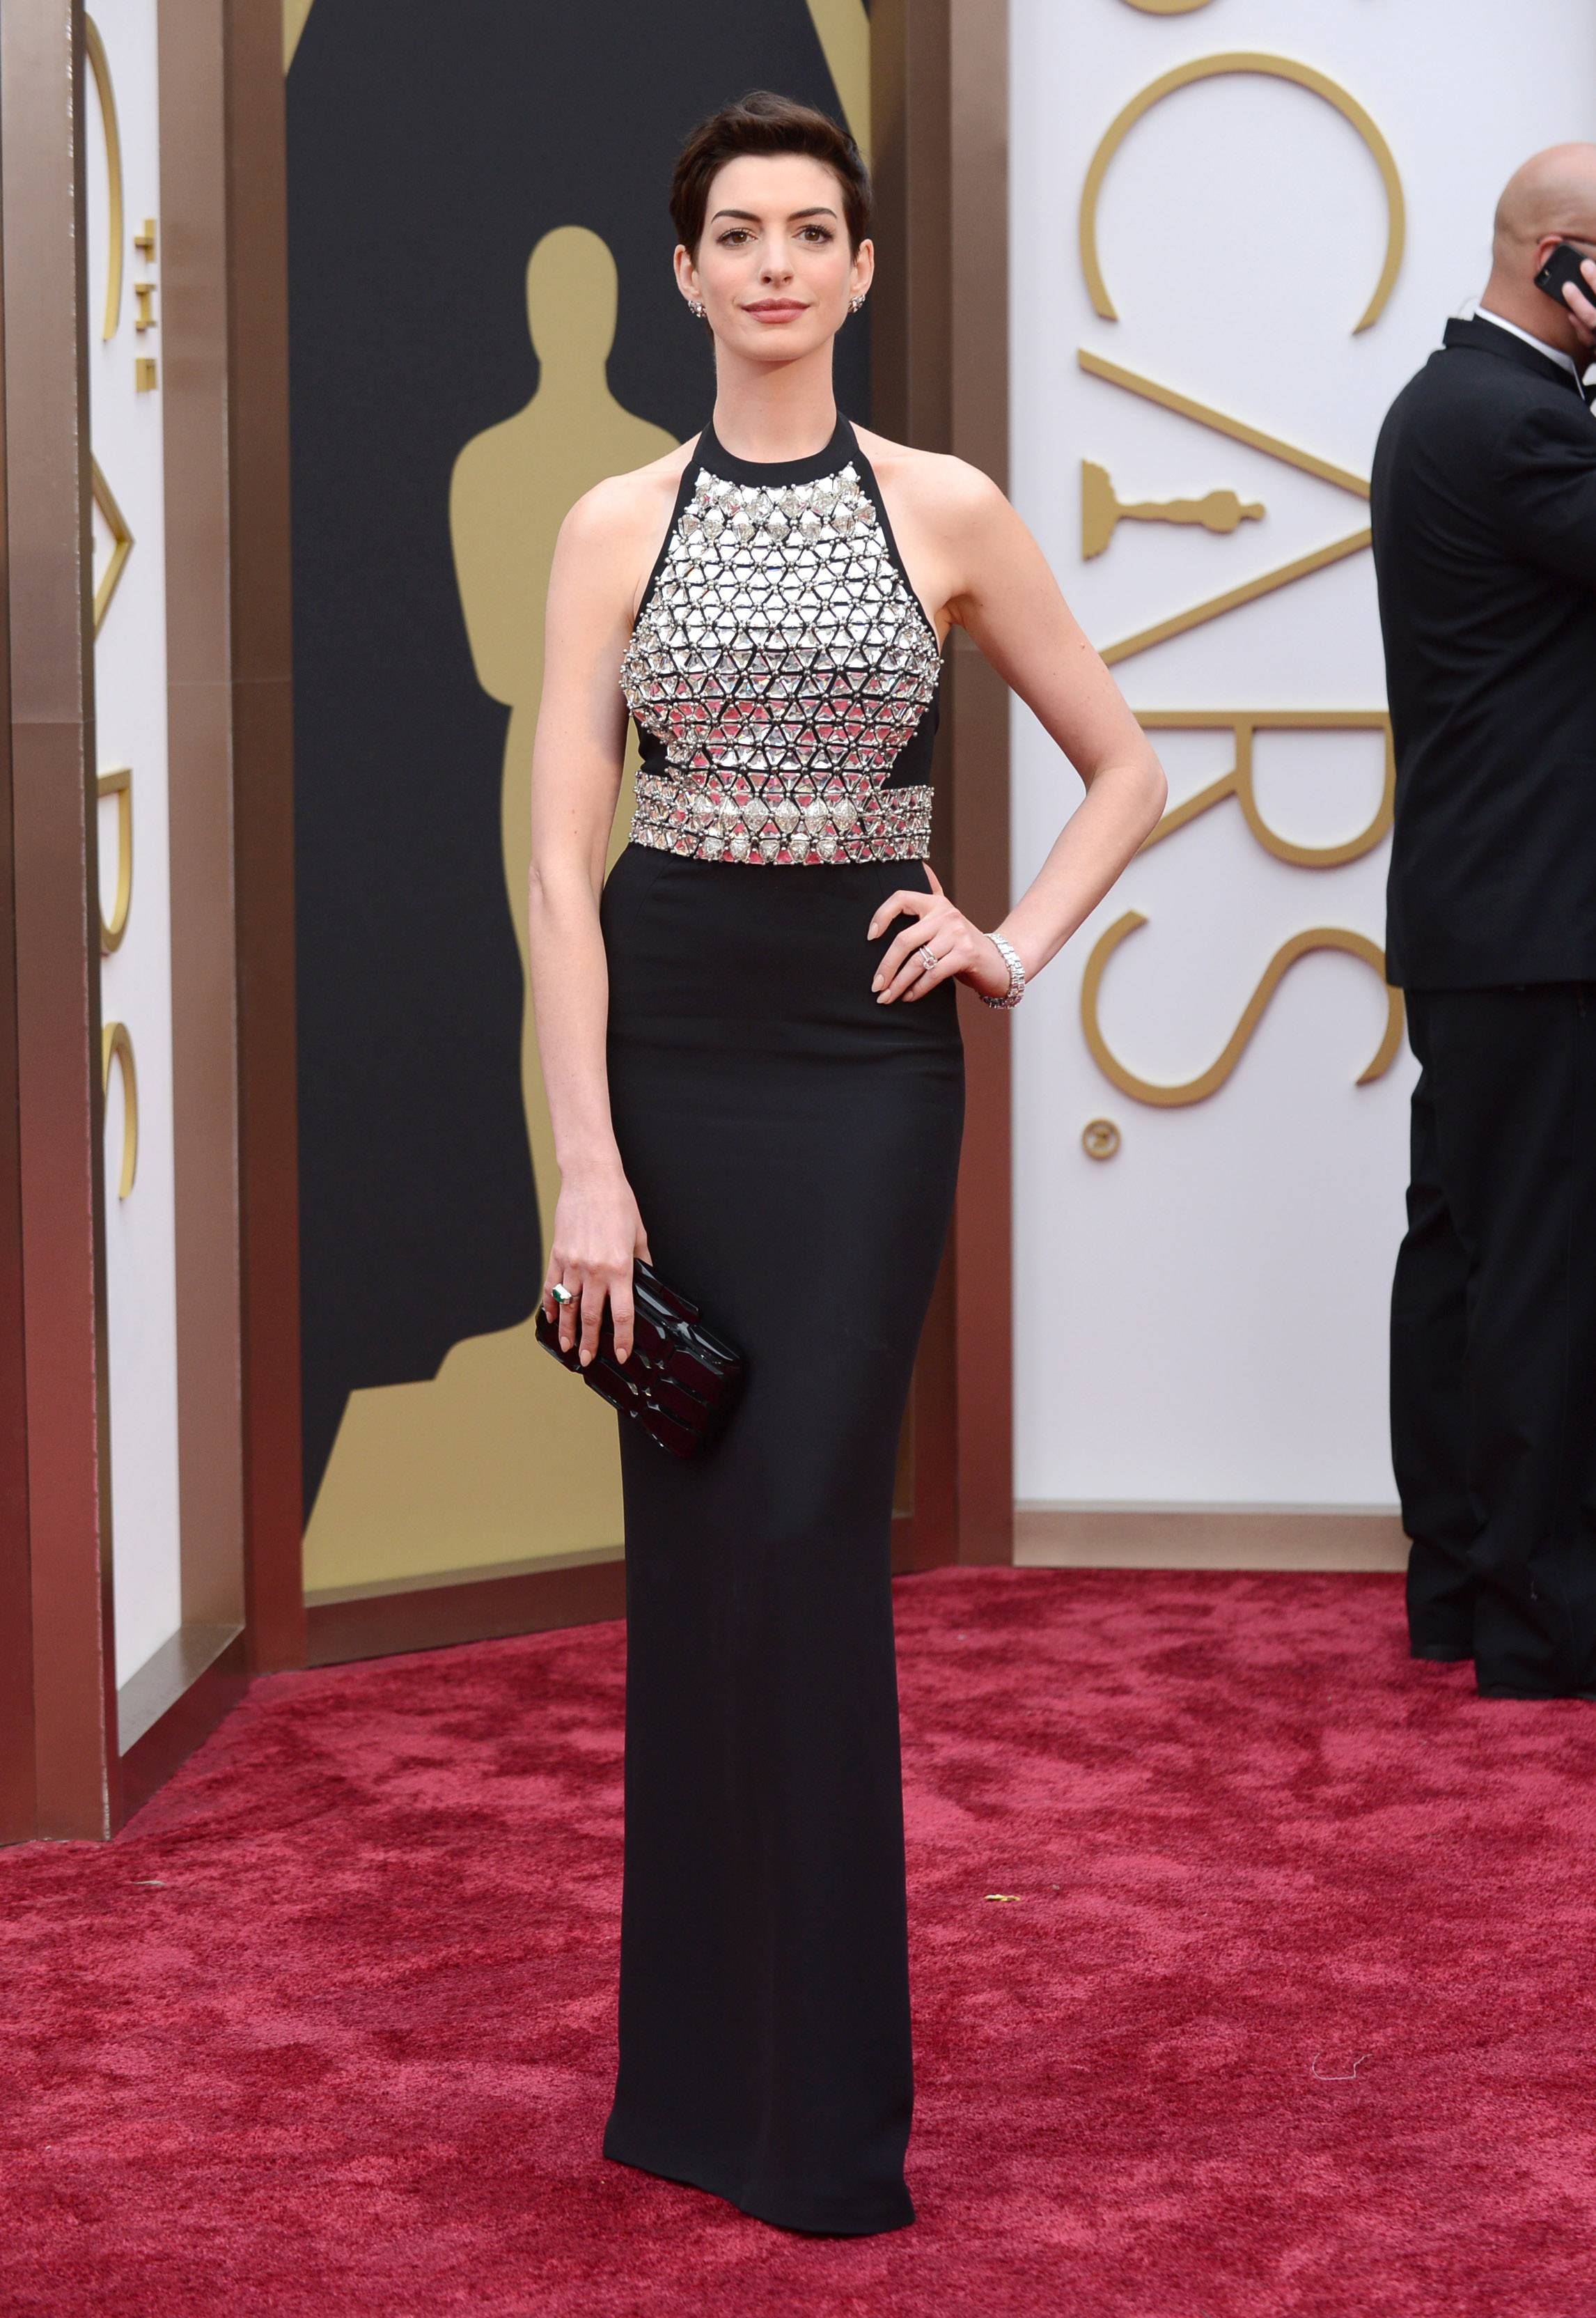 Oscar winner Anne Hathaway chooses an understated gown for this year's Oscars.